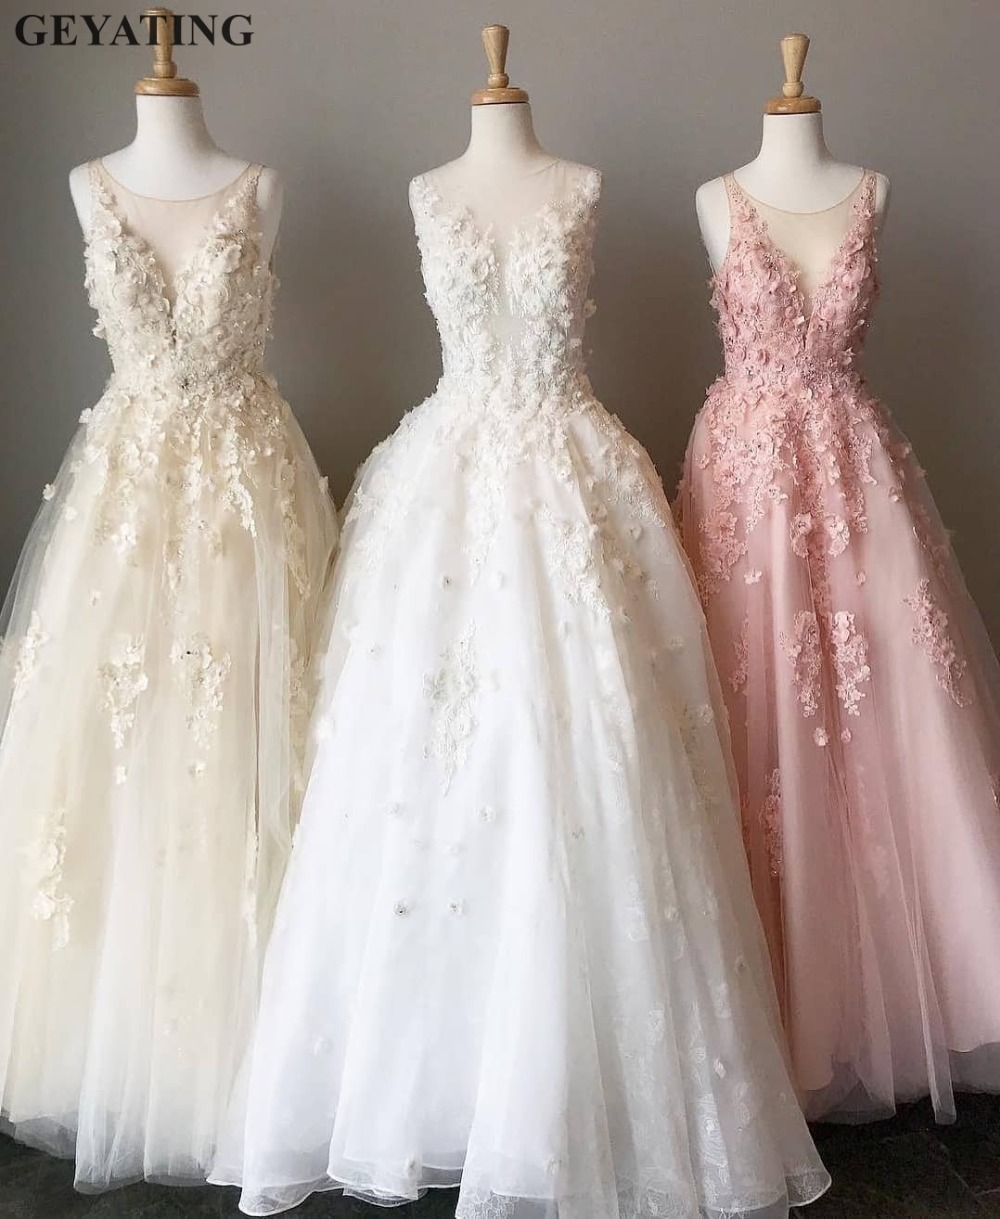 Elegant White Tulle Pink Lace Flora   Prom     Dresses   2019 Long Real Photos A-line Beaded Women Formal Evening   Dress   Girl Party Gowns